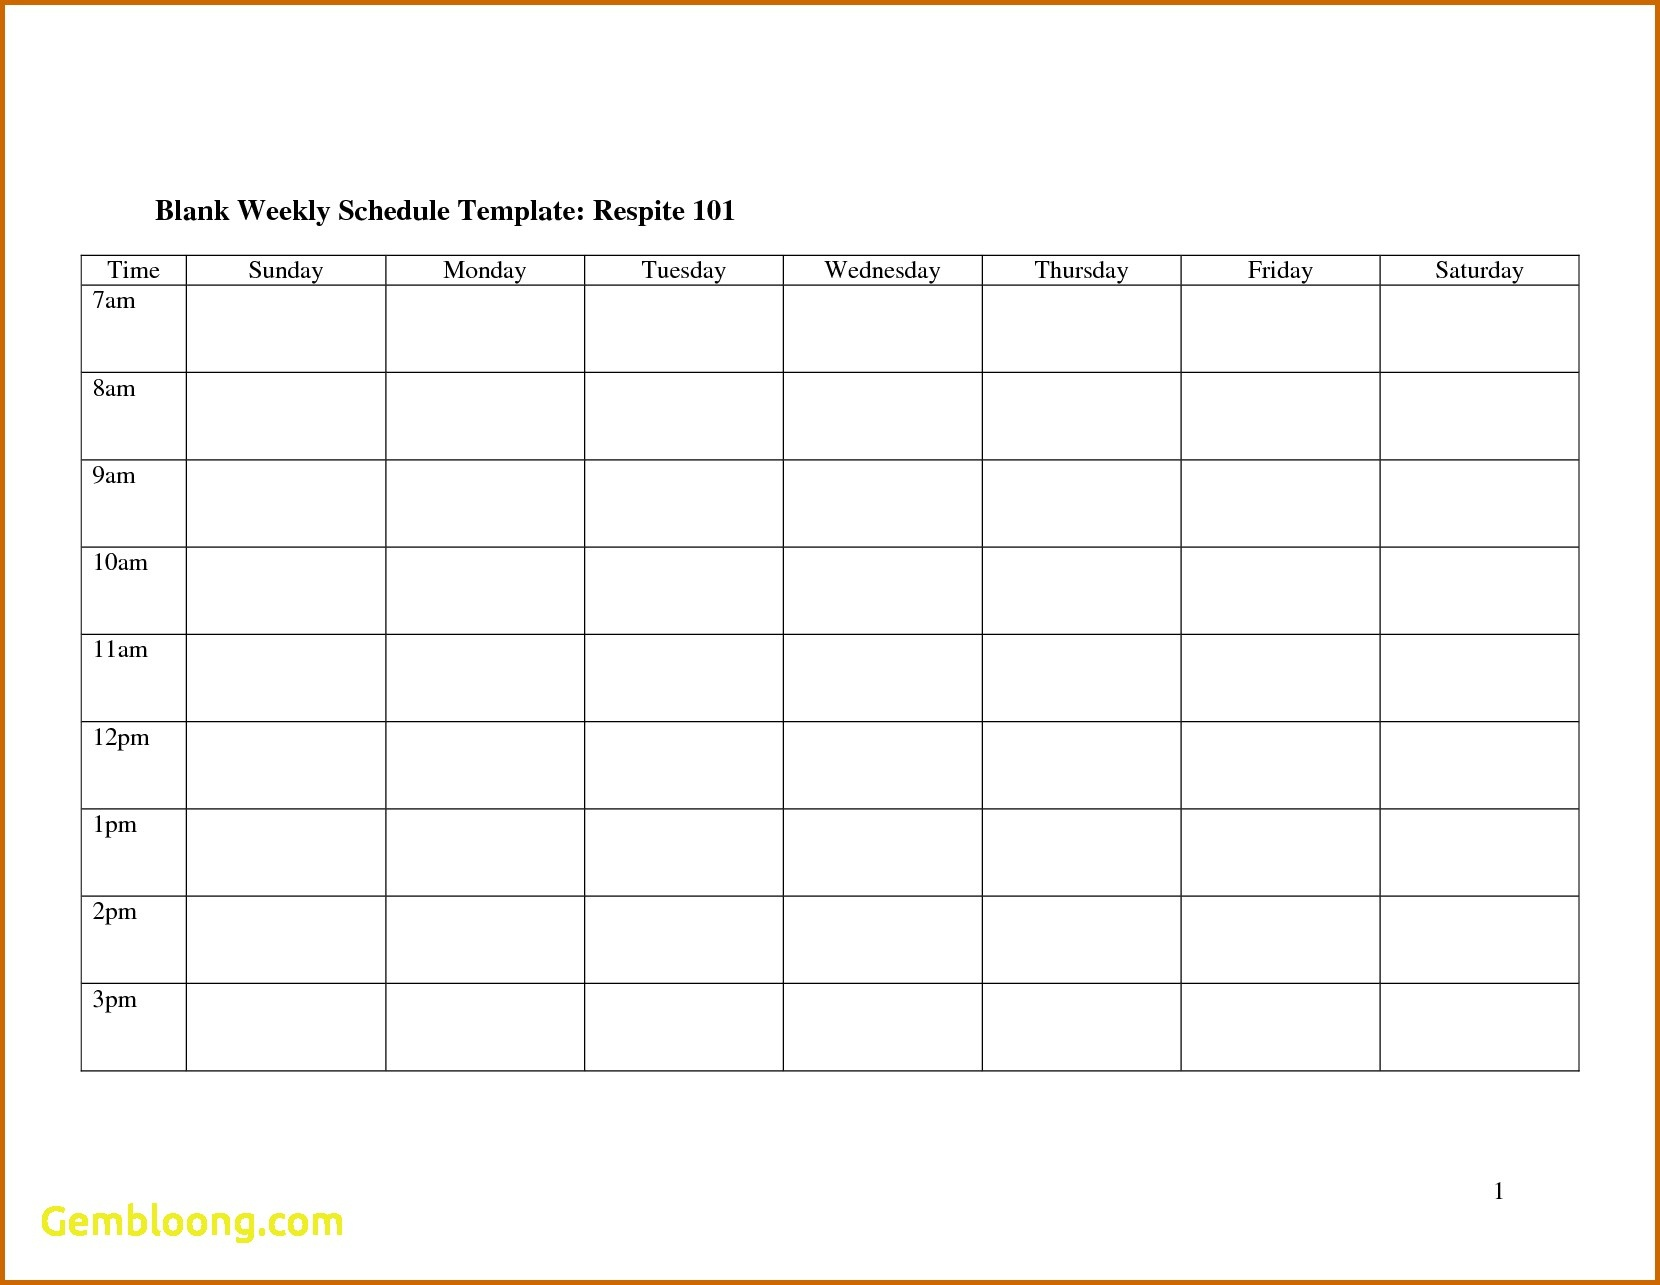 Blank Work Schedule Charlotte Clergy Coalition Monthly Ate Free - Free Printable Blank Work Schedules